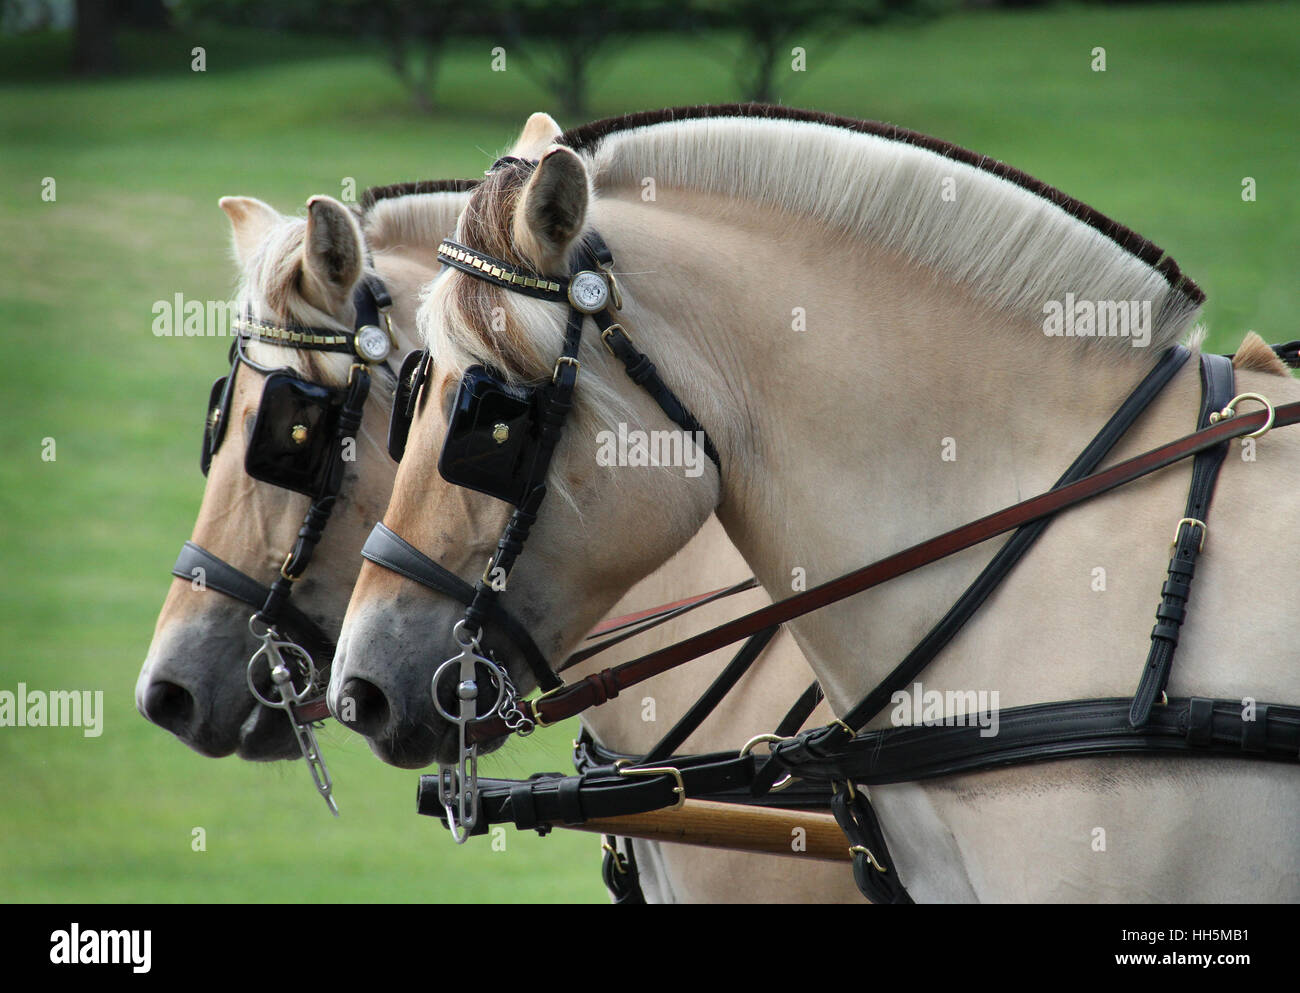 A beautifully matched pair of Norwegian Fjord horses in harness - Stock Image